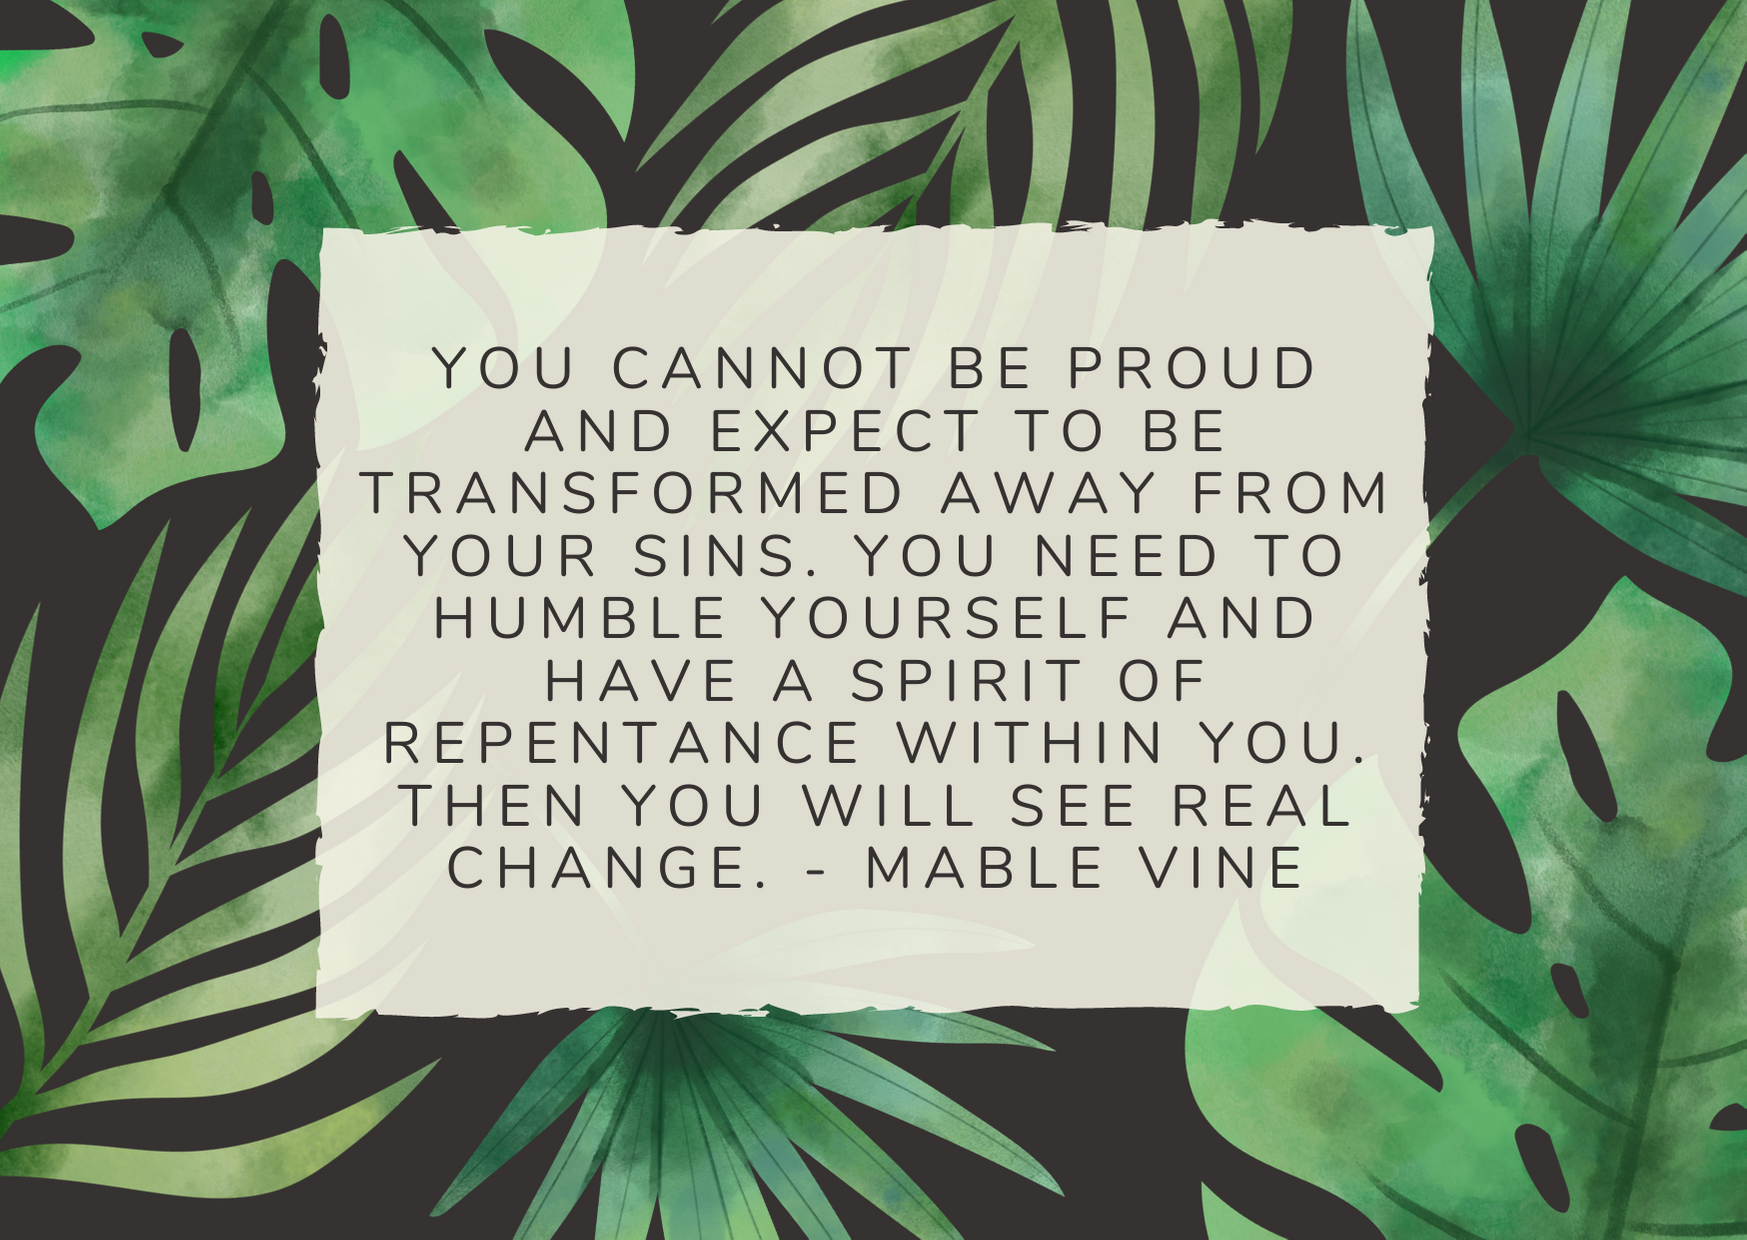 You cannot be proud and expect to be transformed away from your sins. You need to humble yourself and have a spirit of repentance within you. Then you will see real change. - Mable Vine